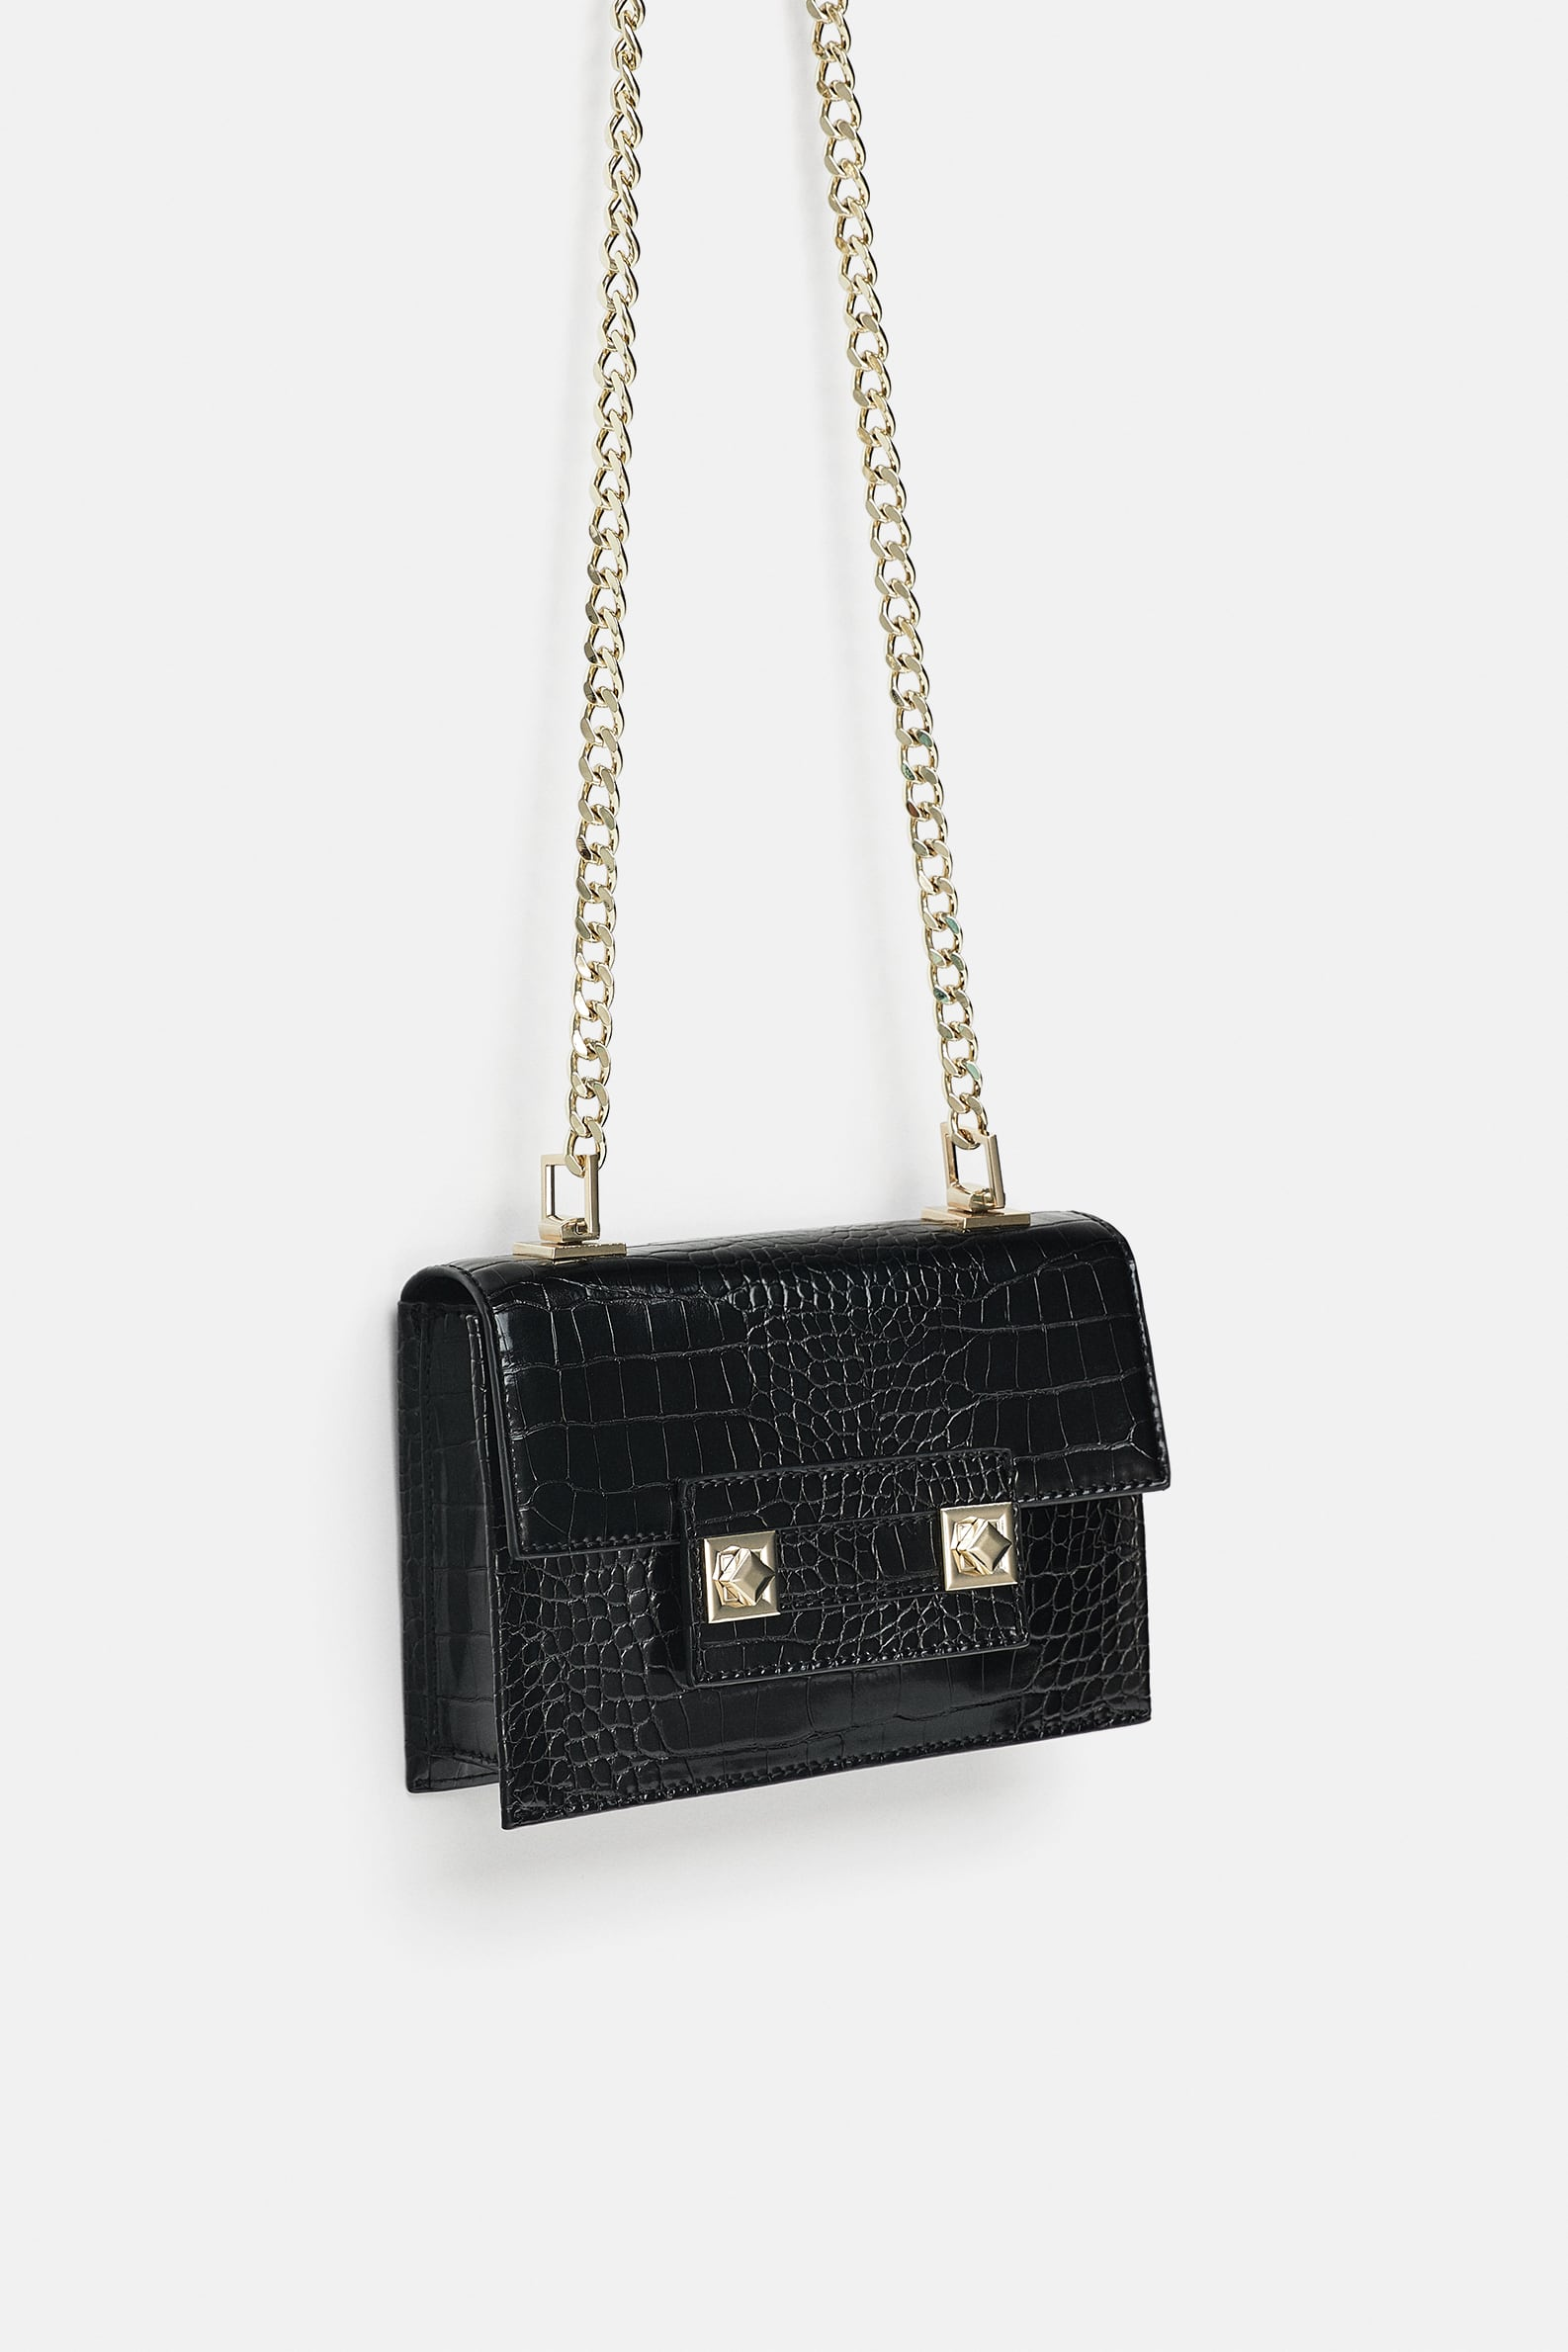 Zara MINI CROSSBODY BAG Black Croc